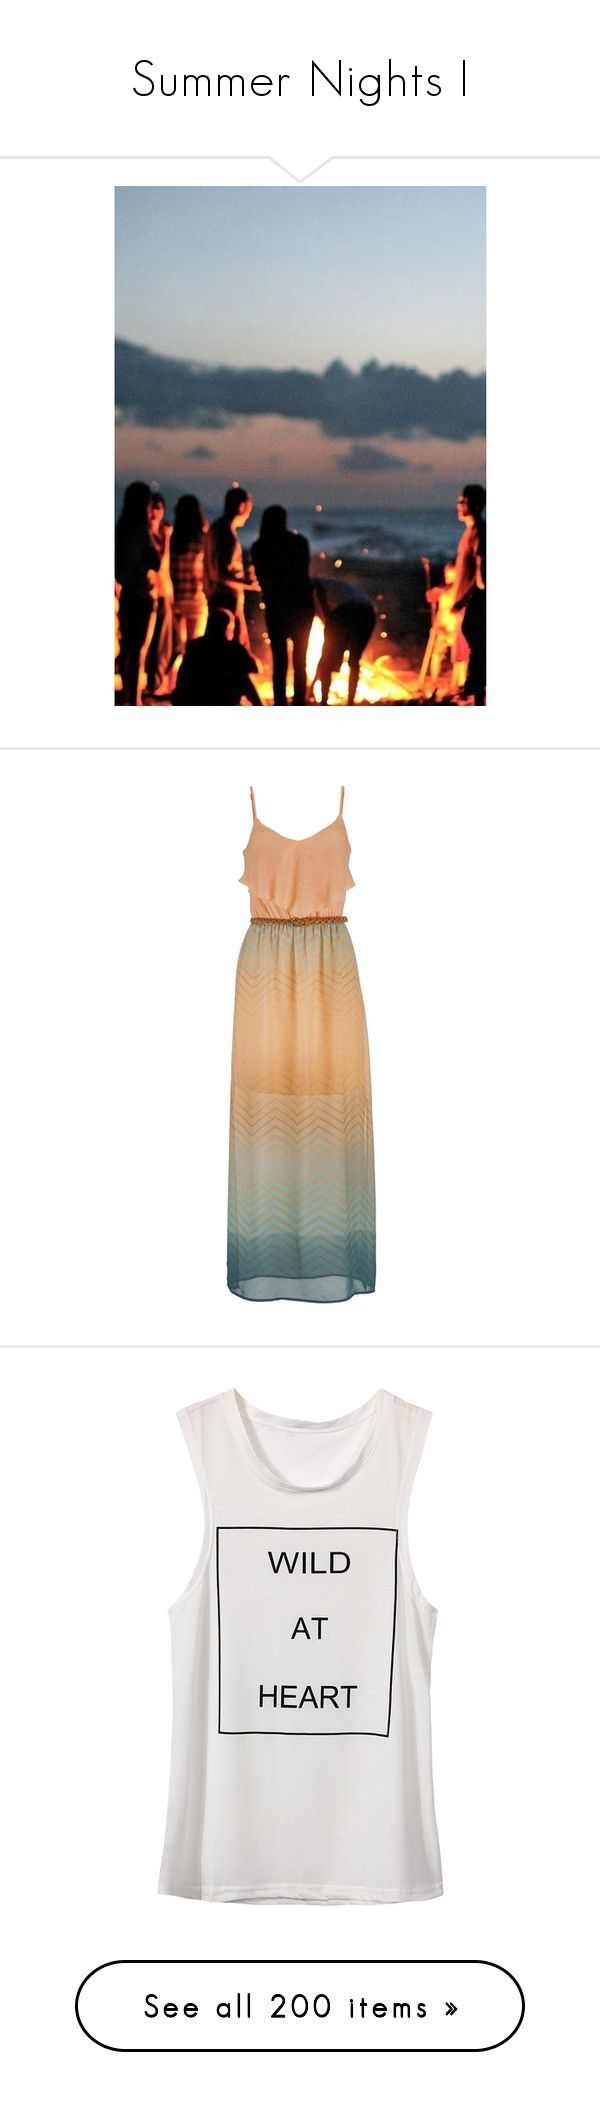 """Summer Nights I"" by pocahaunted666 ❤ liked on Polyvore featuring backgrounds, dresses, vestidos, maxi dresses, mango, chevron maxi dresses, ombre maxi dresses, chevron striped maxi dress, ombre dresses and ruffle maxi dress"